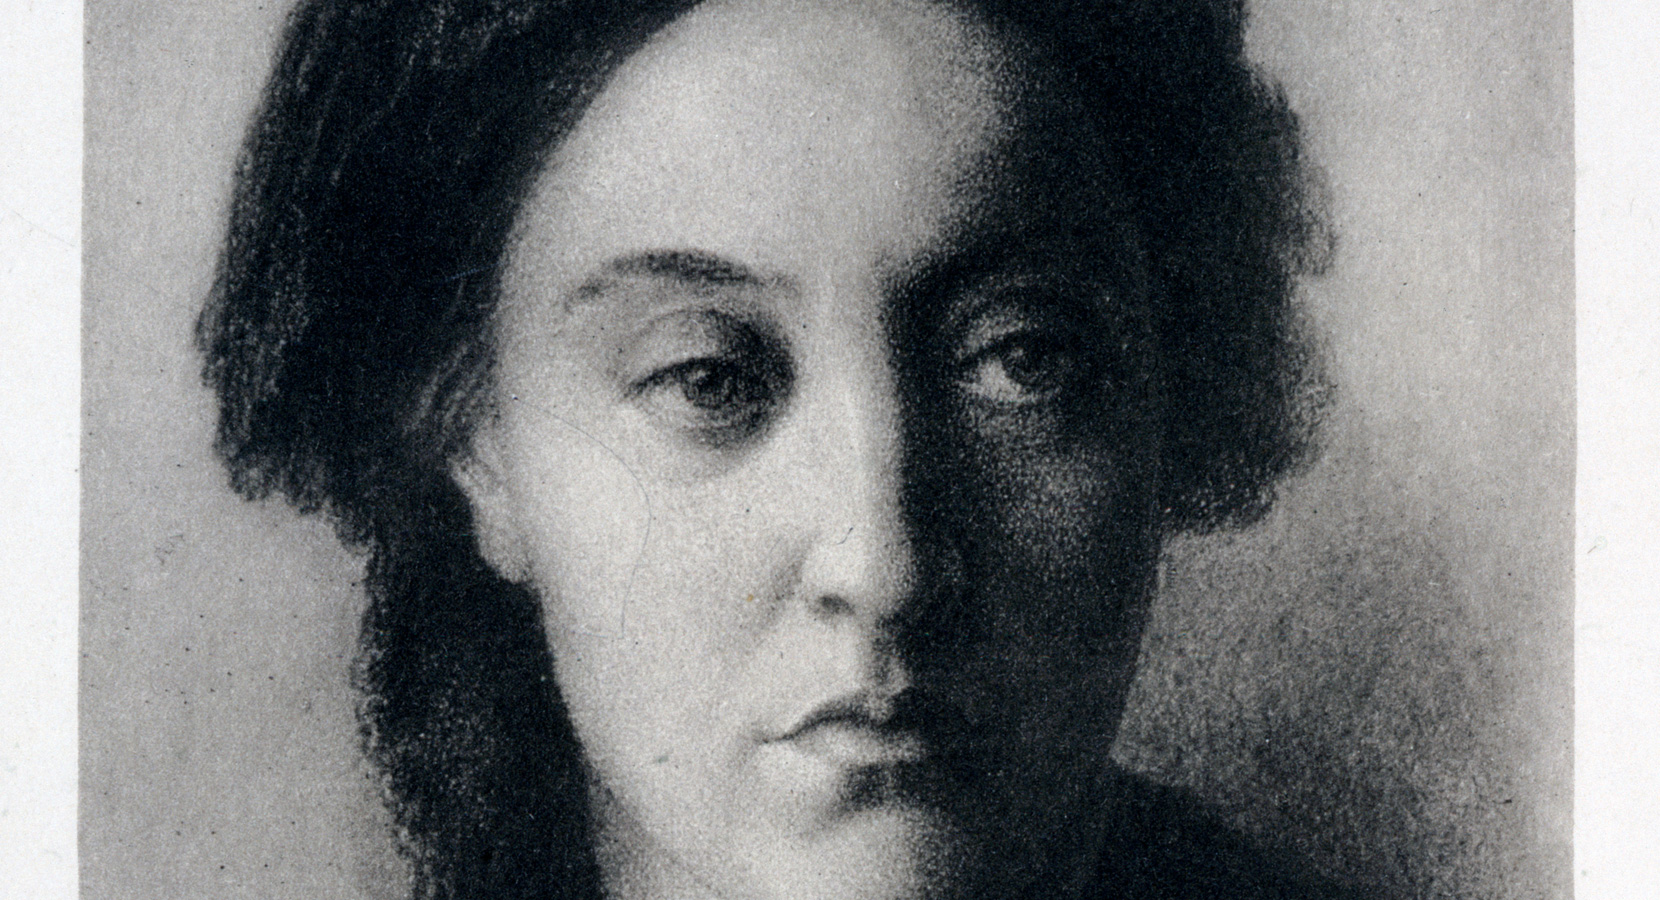 A reflection on sonnets: 'When life was sweet because you call'd them sweet'